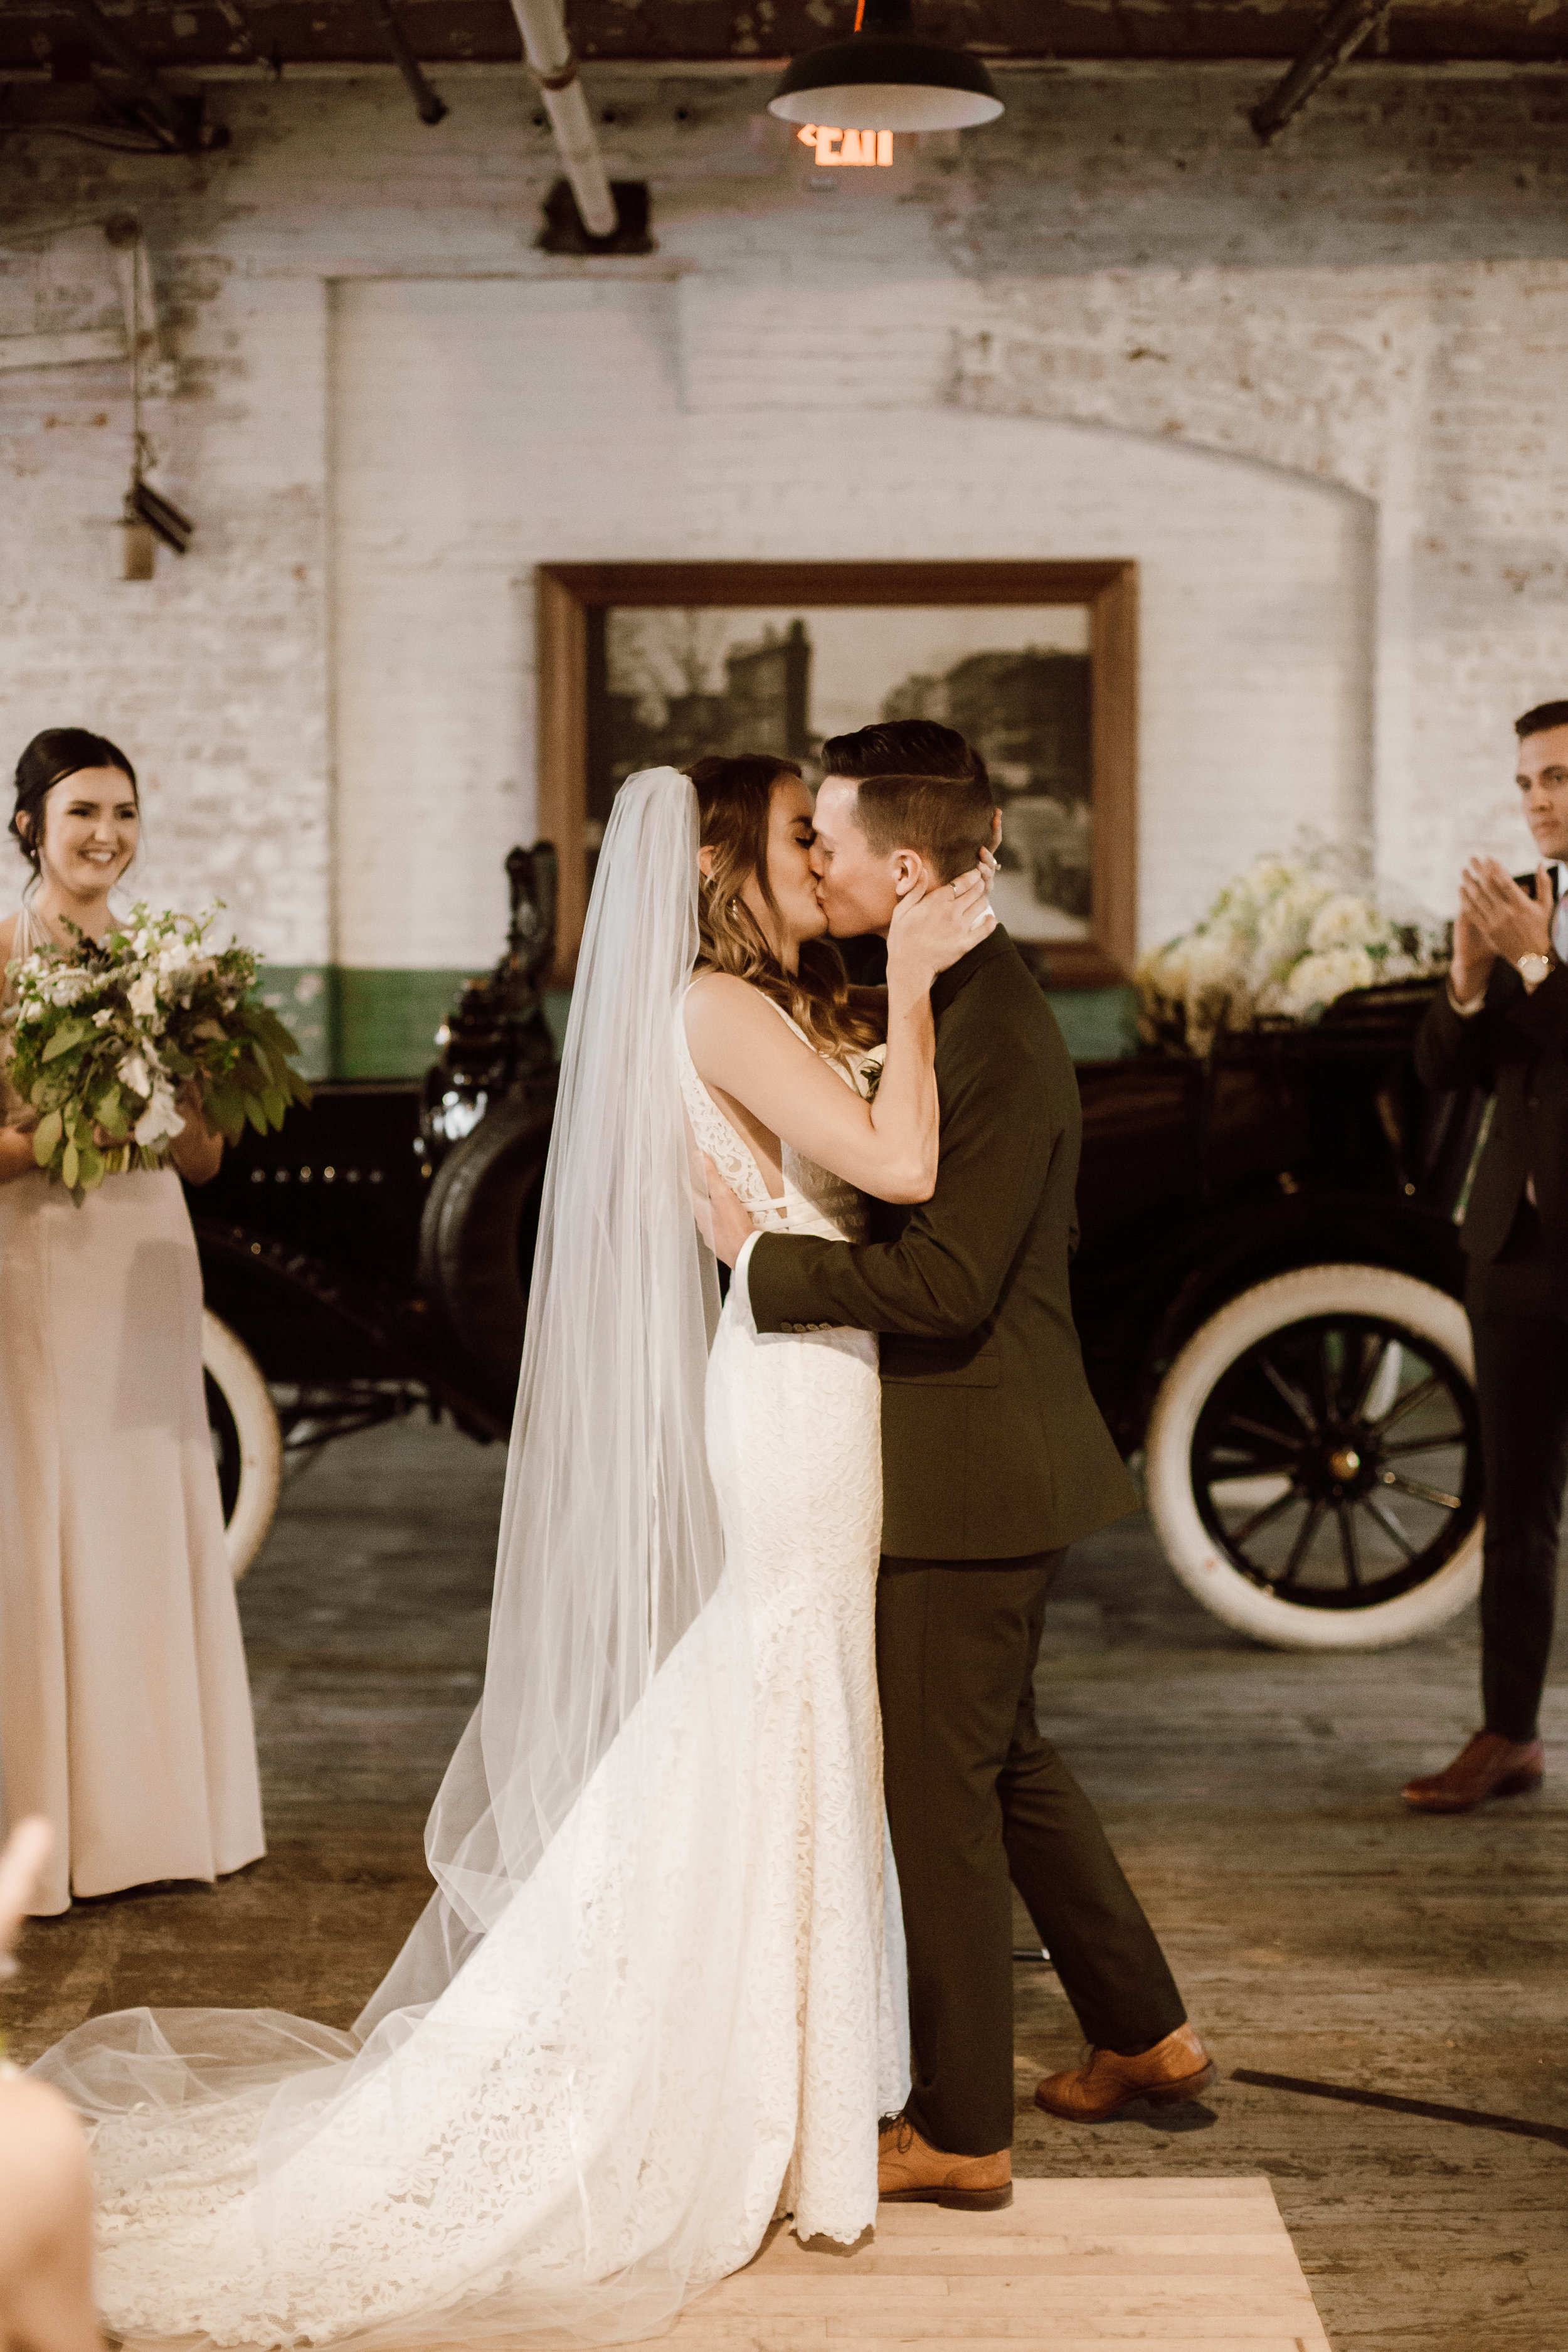 Katie_Vonasek_Photography_Ford_Piquette_Plant_Wedding_Detroit75.JPG